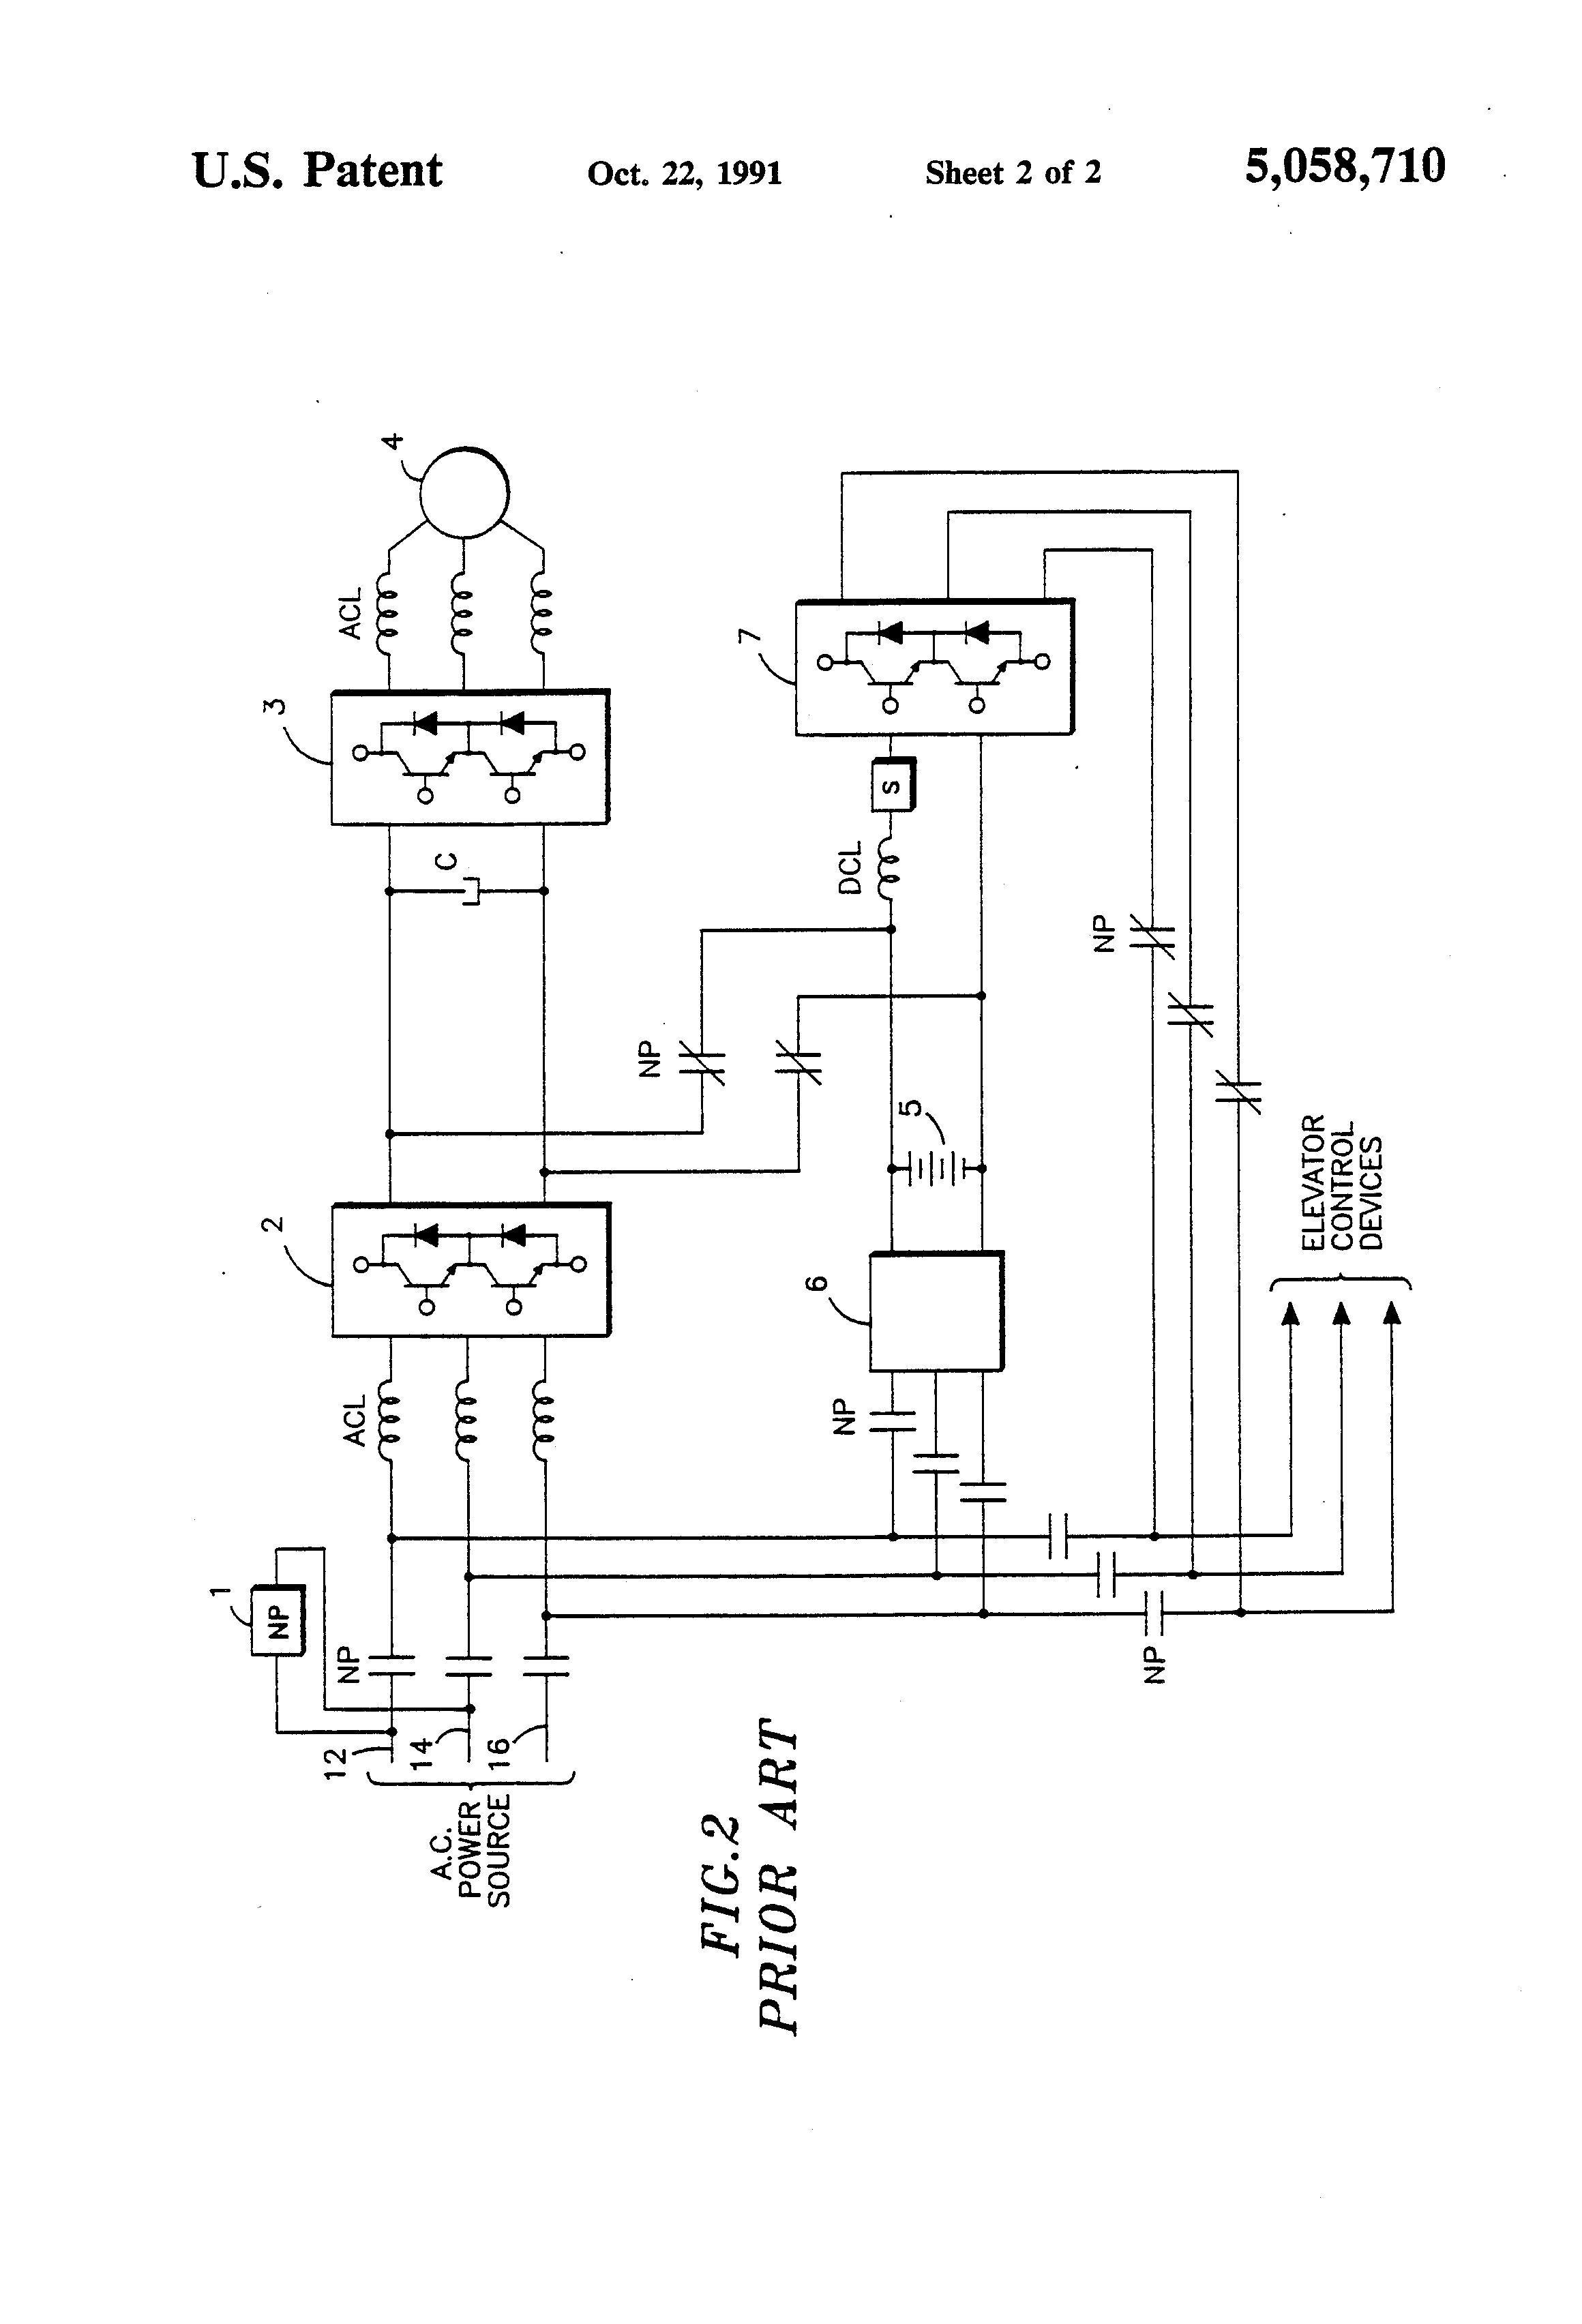 Wiring Diagram Elevator Mitsubishi 34 Images M Series Us5058710 2 Circuit And Schematics At Cita